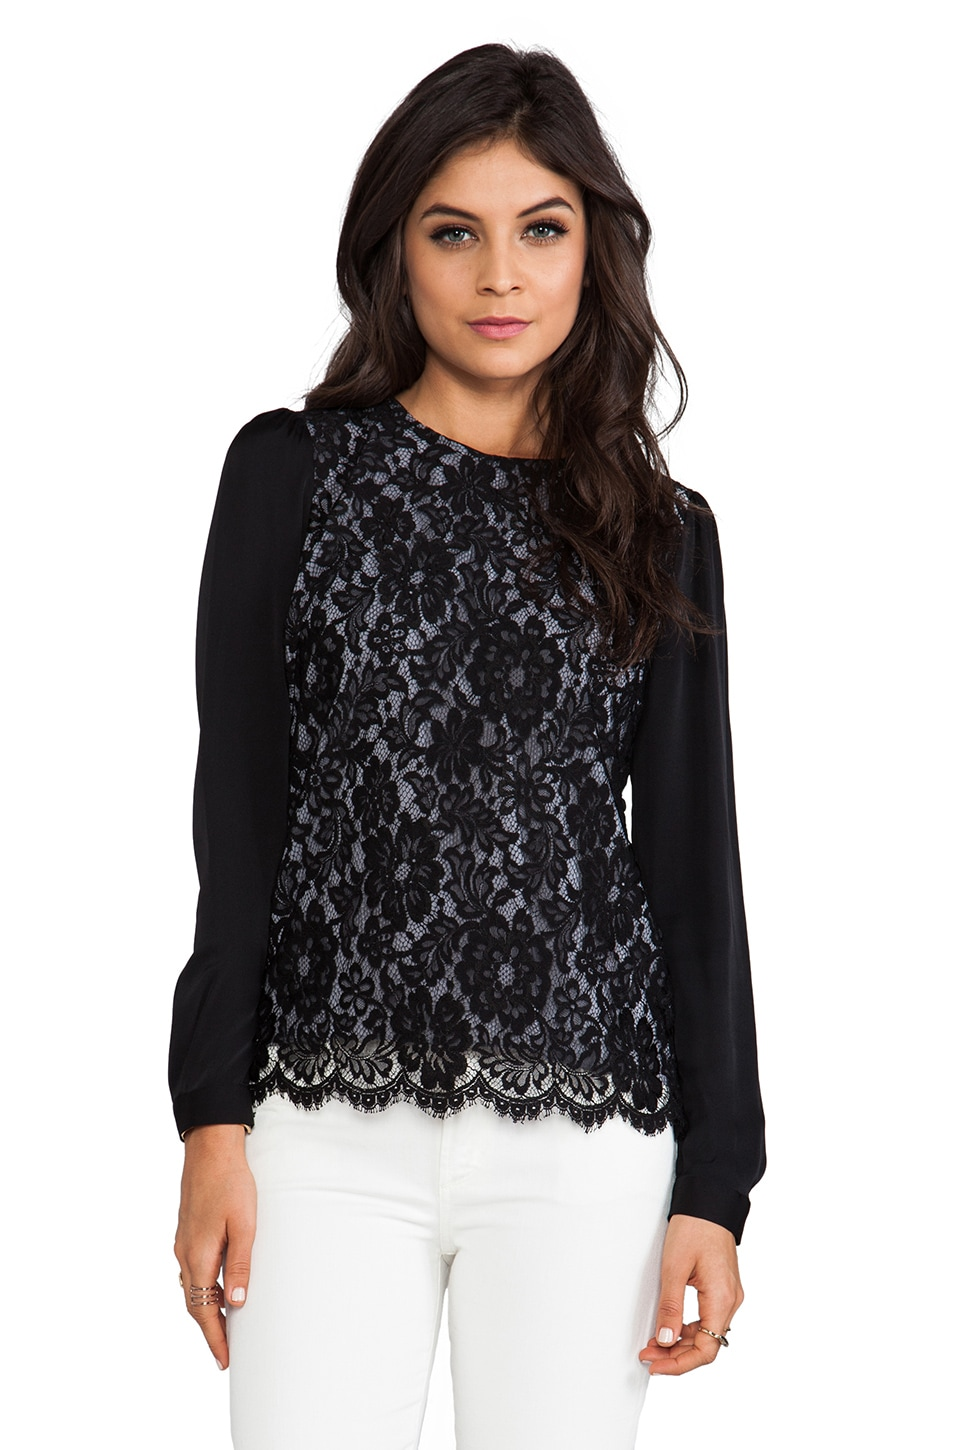 MILLY Floral Scalloped Lace Blousant Sleeve Top in Black/Charcoal